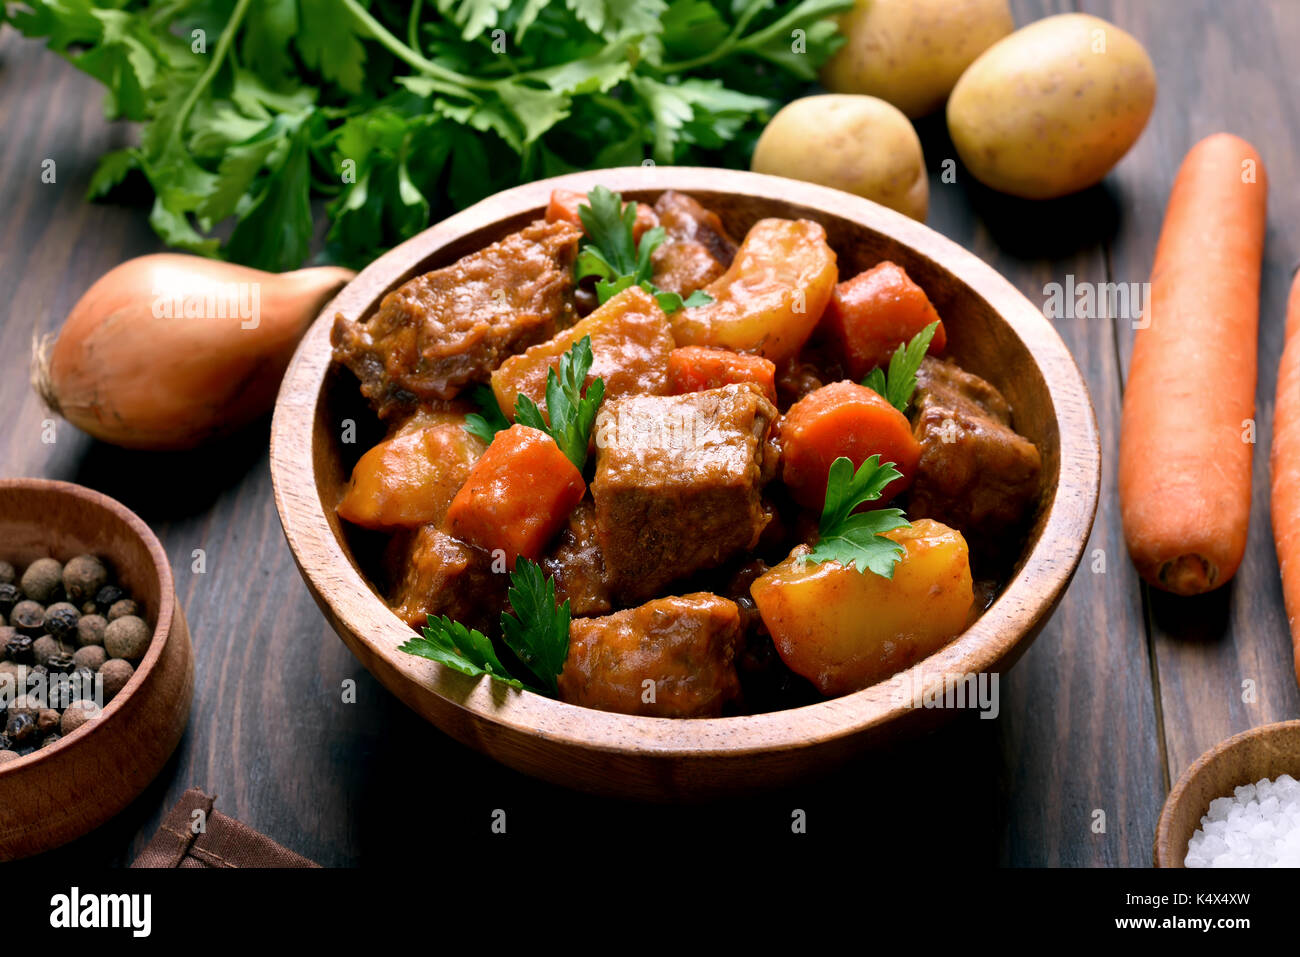 Dish for dinner. Meat stew with vegetables in wooden bowl - Stock Image